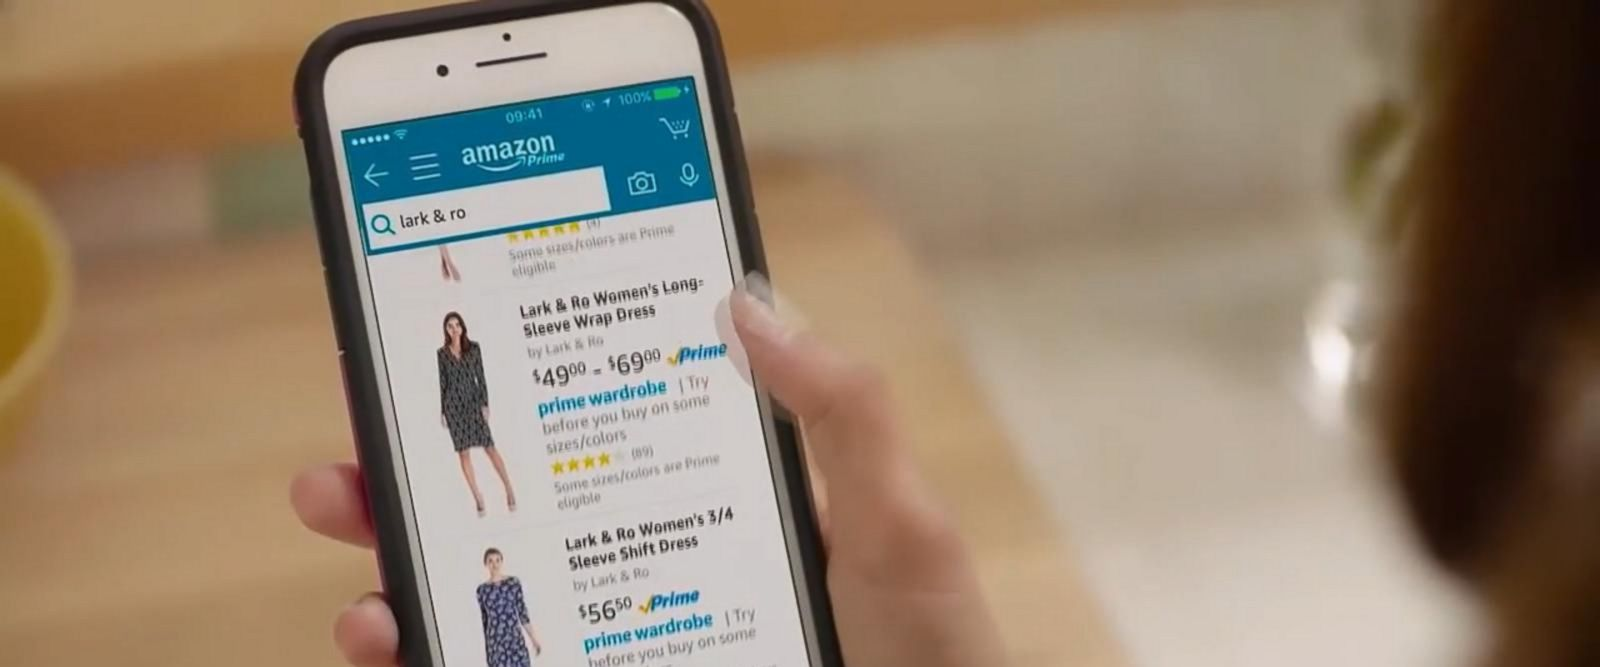 VIDEO: First look at Amazon's new online shopping experience